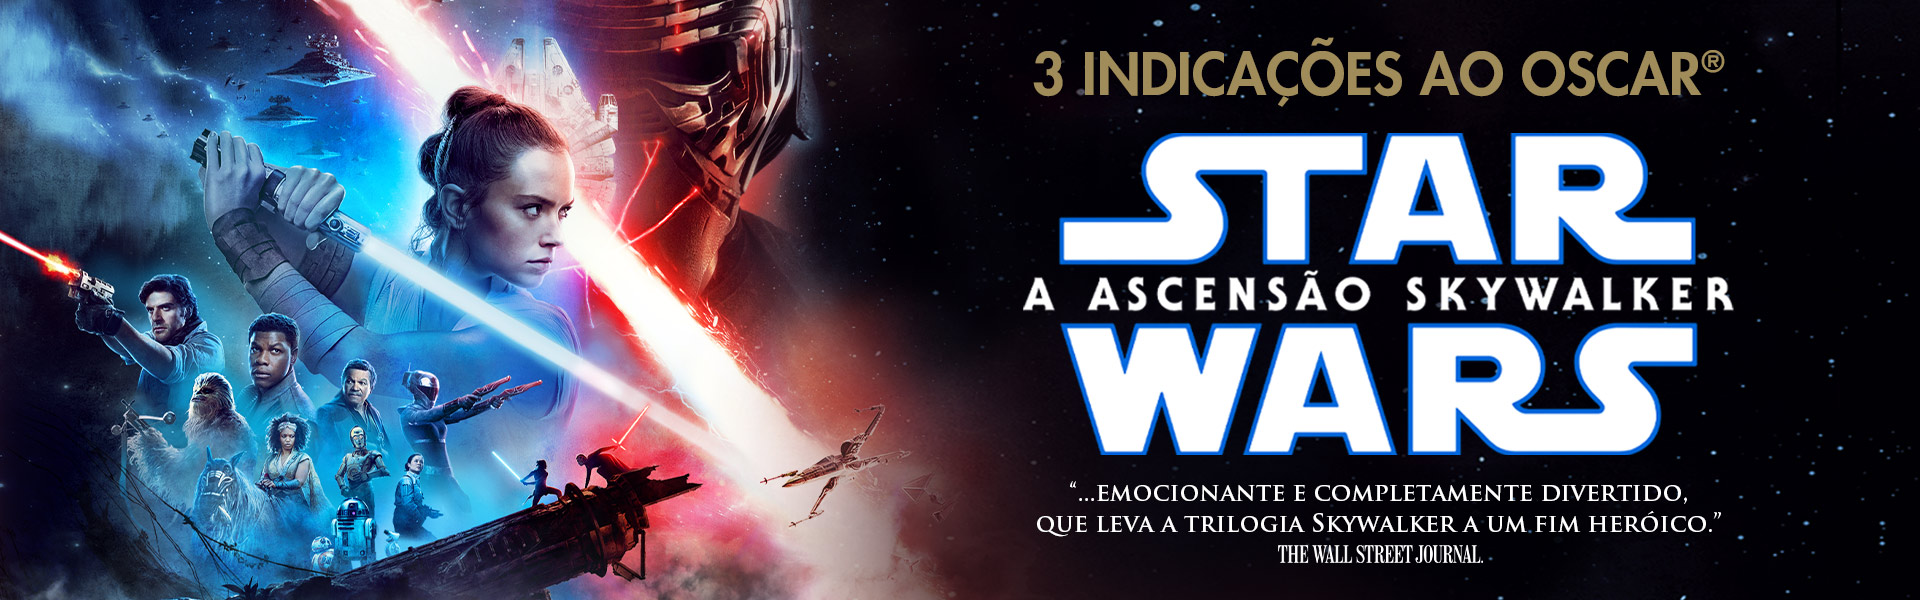 Star Wars - A Ascensão Skywalker